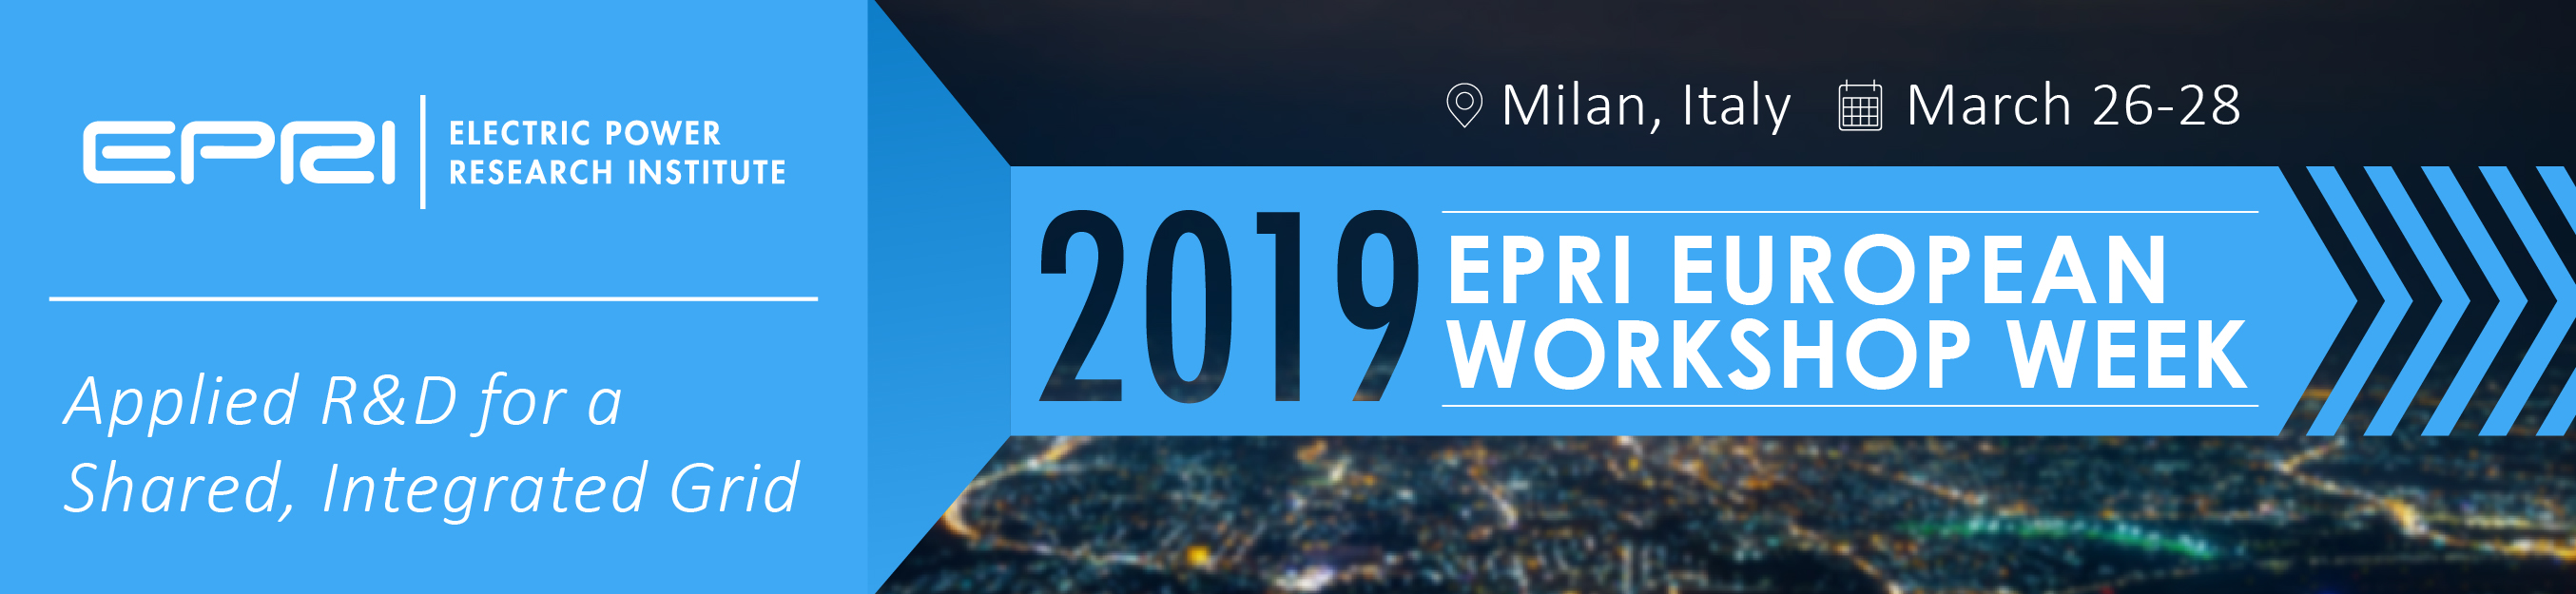 2019 EPRI European Workshop Week